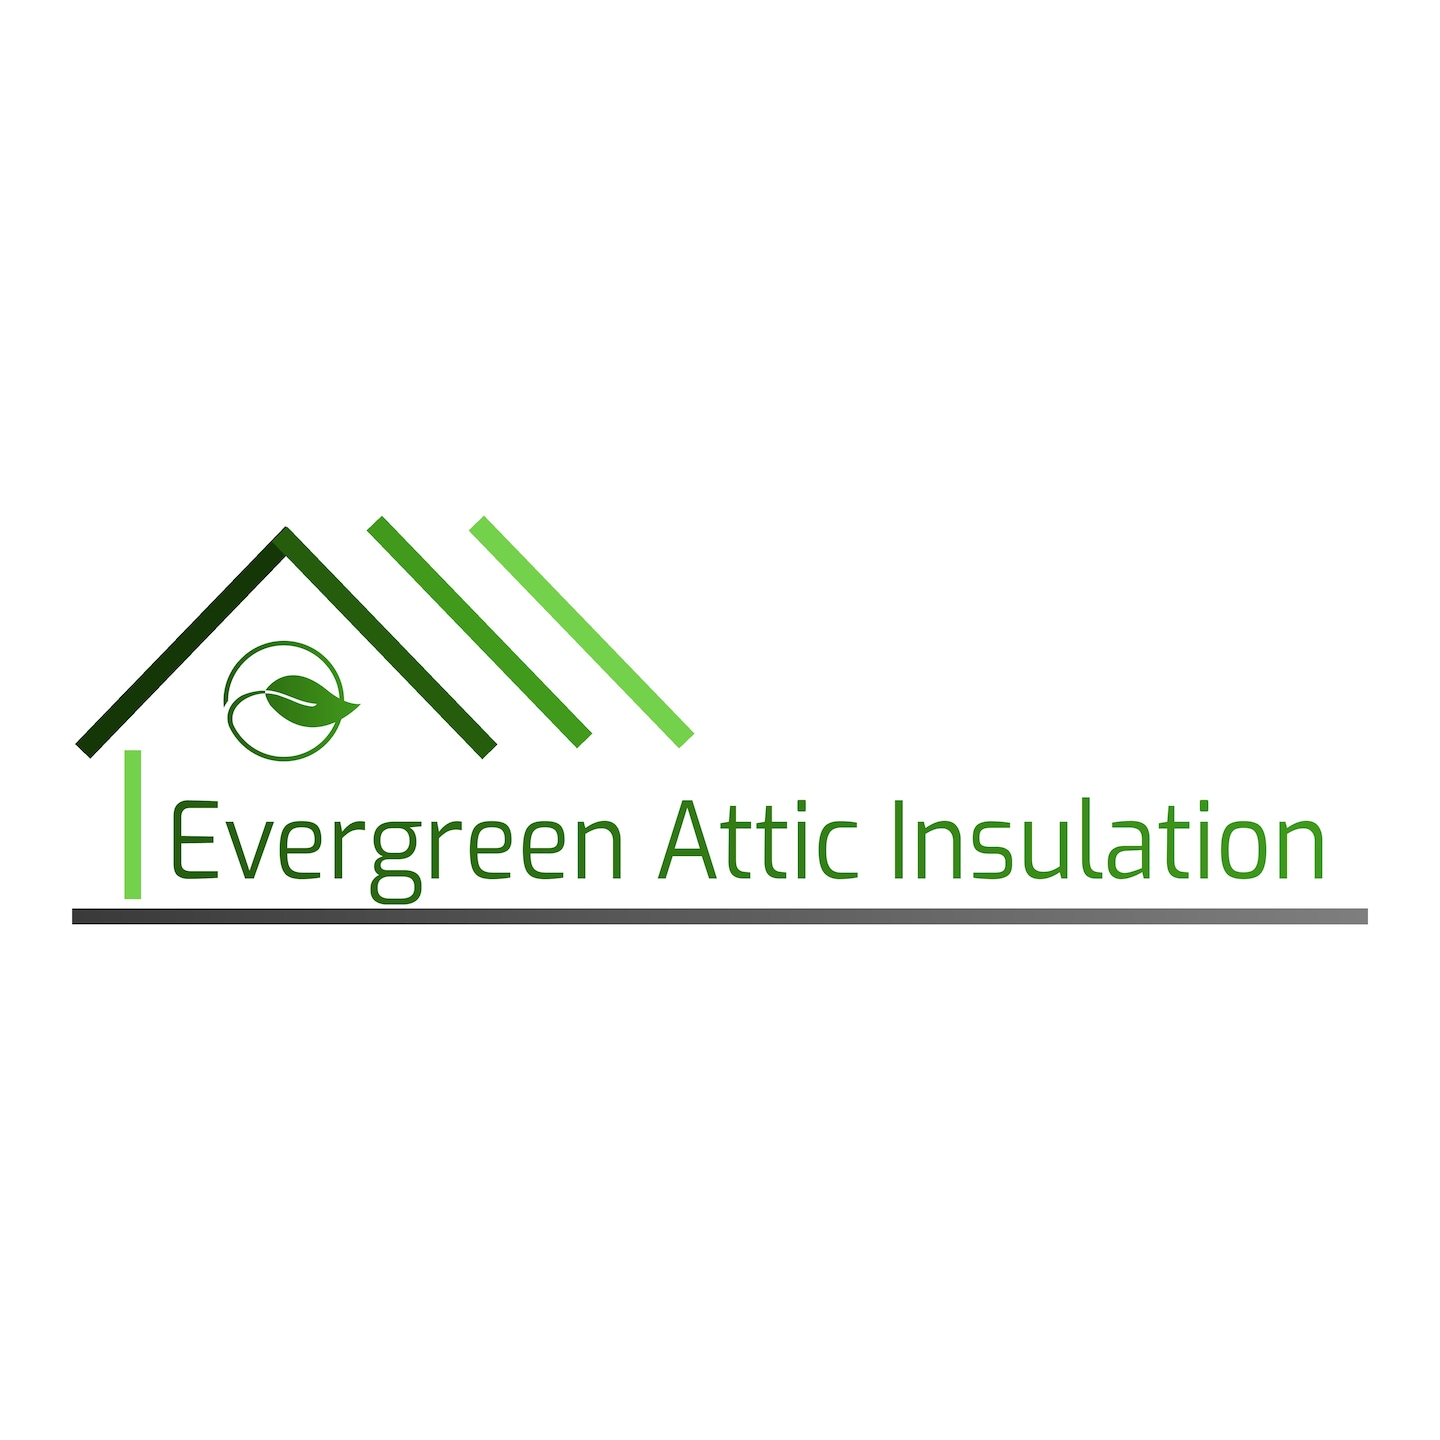 Evergreen Attic Insulation